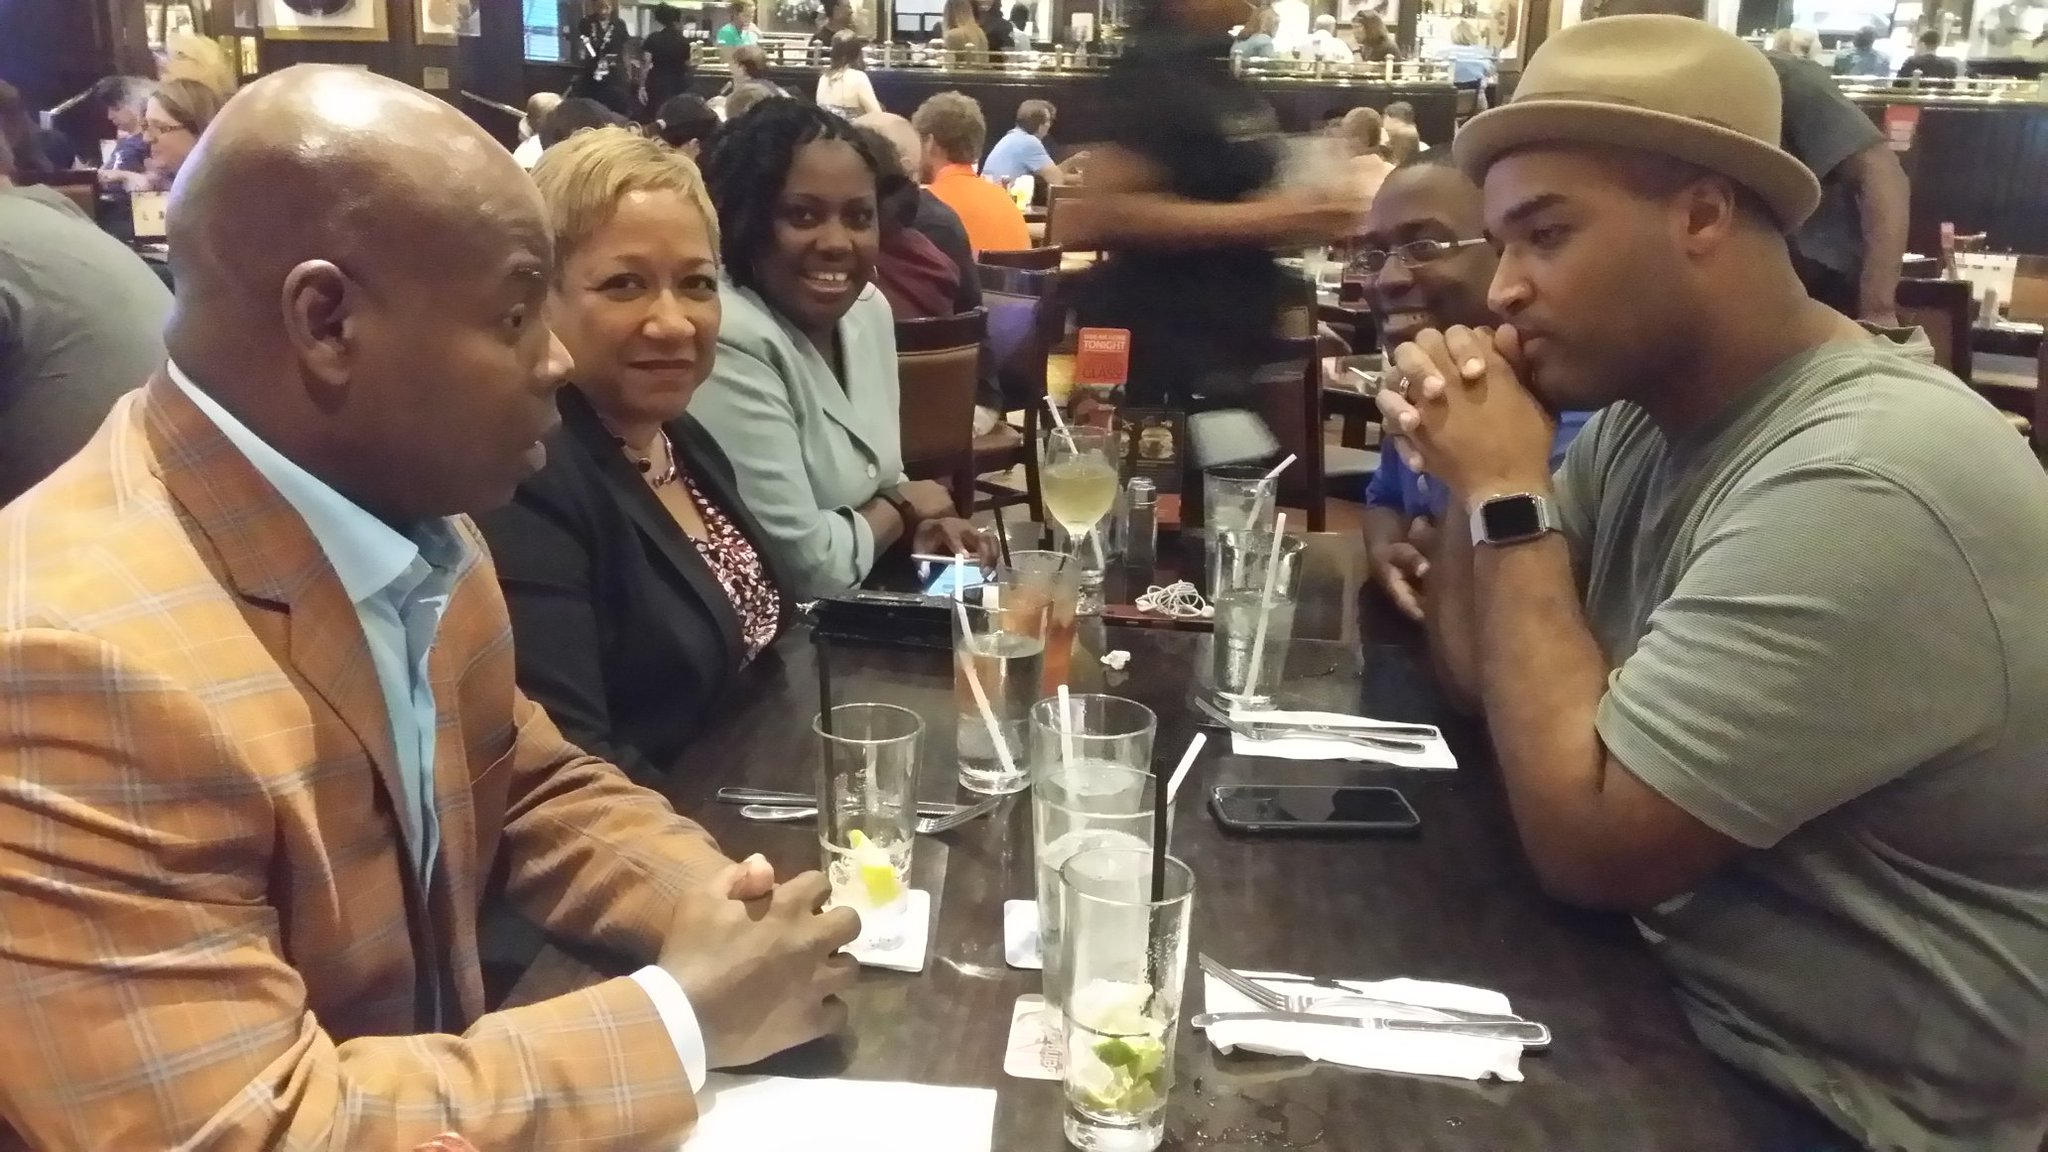 Thumbnail for BDPA National Conference Recap - Aug 10 - Day 1